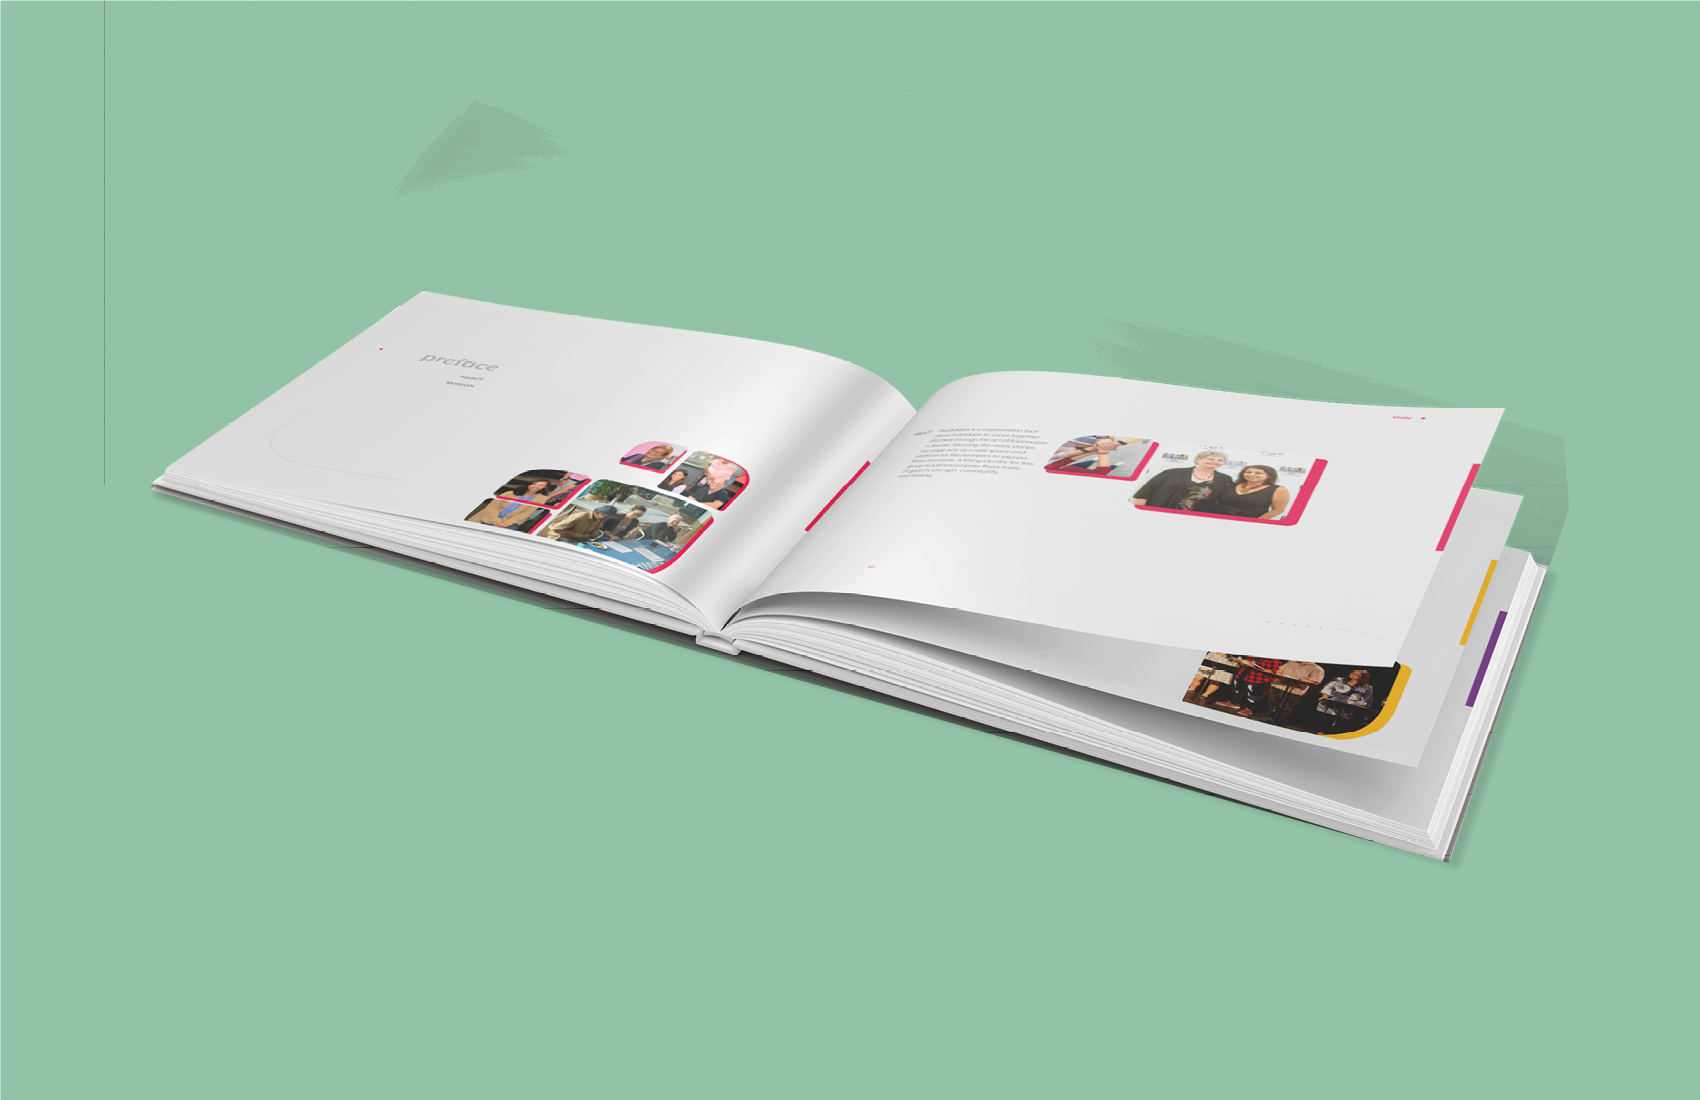 A mockup of the process book made for the refreshed identity for Playbuilders of Hawaiʻi.